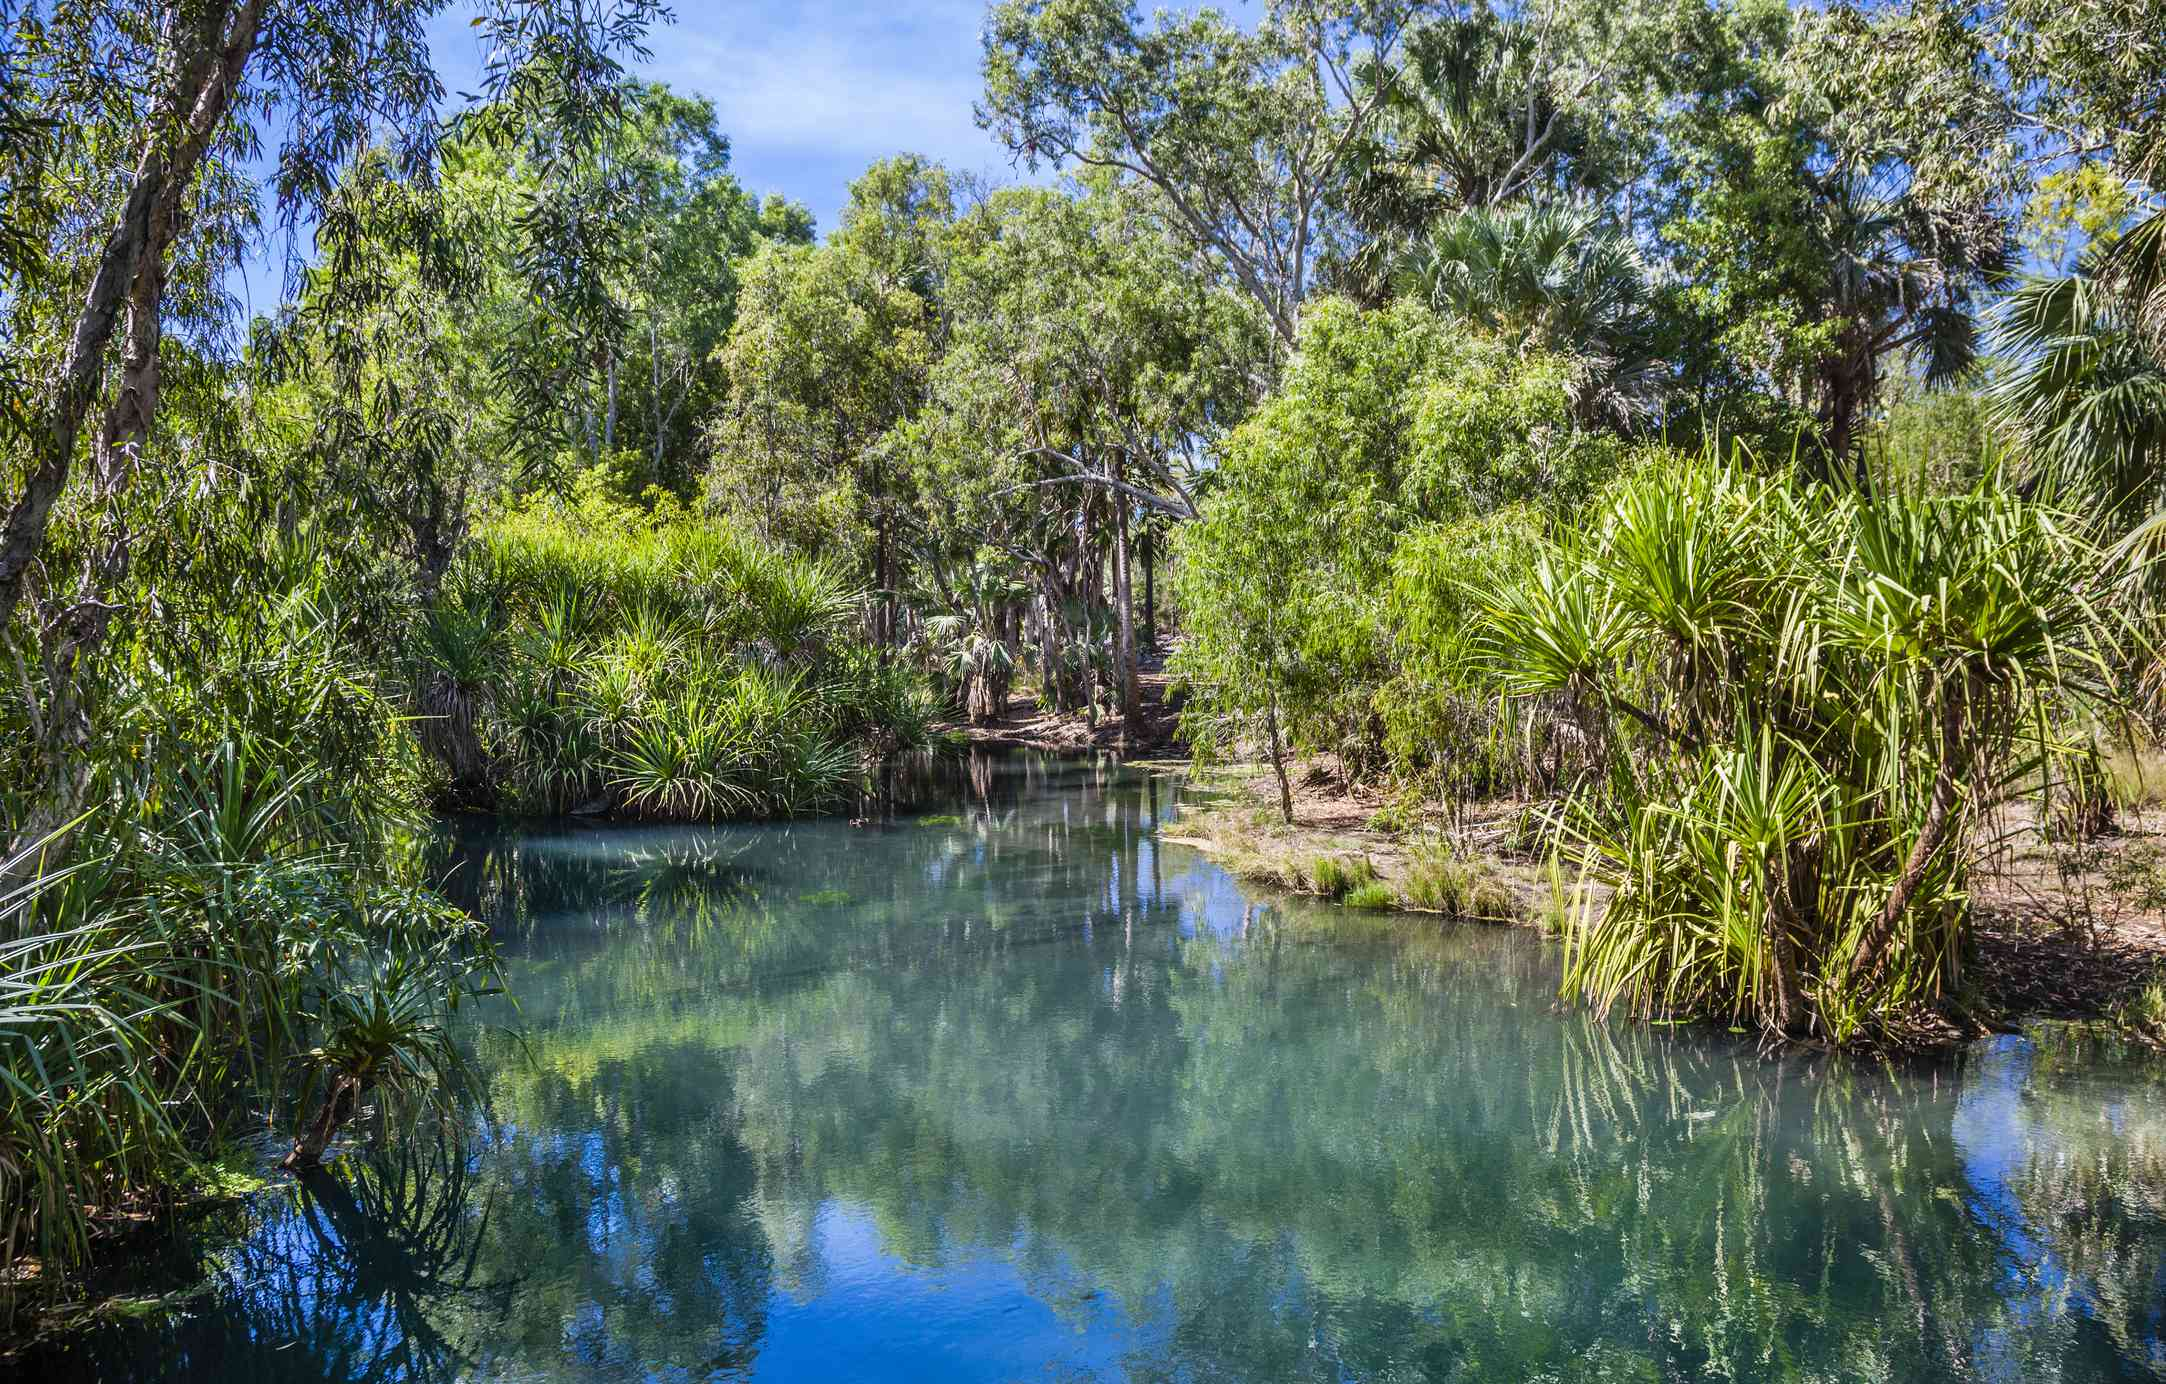 Waterhouse River surrounded by green foliage